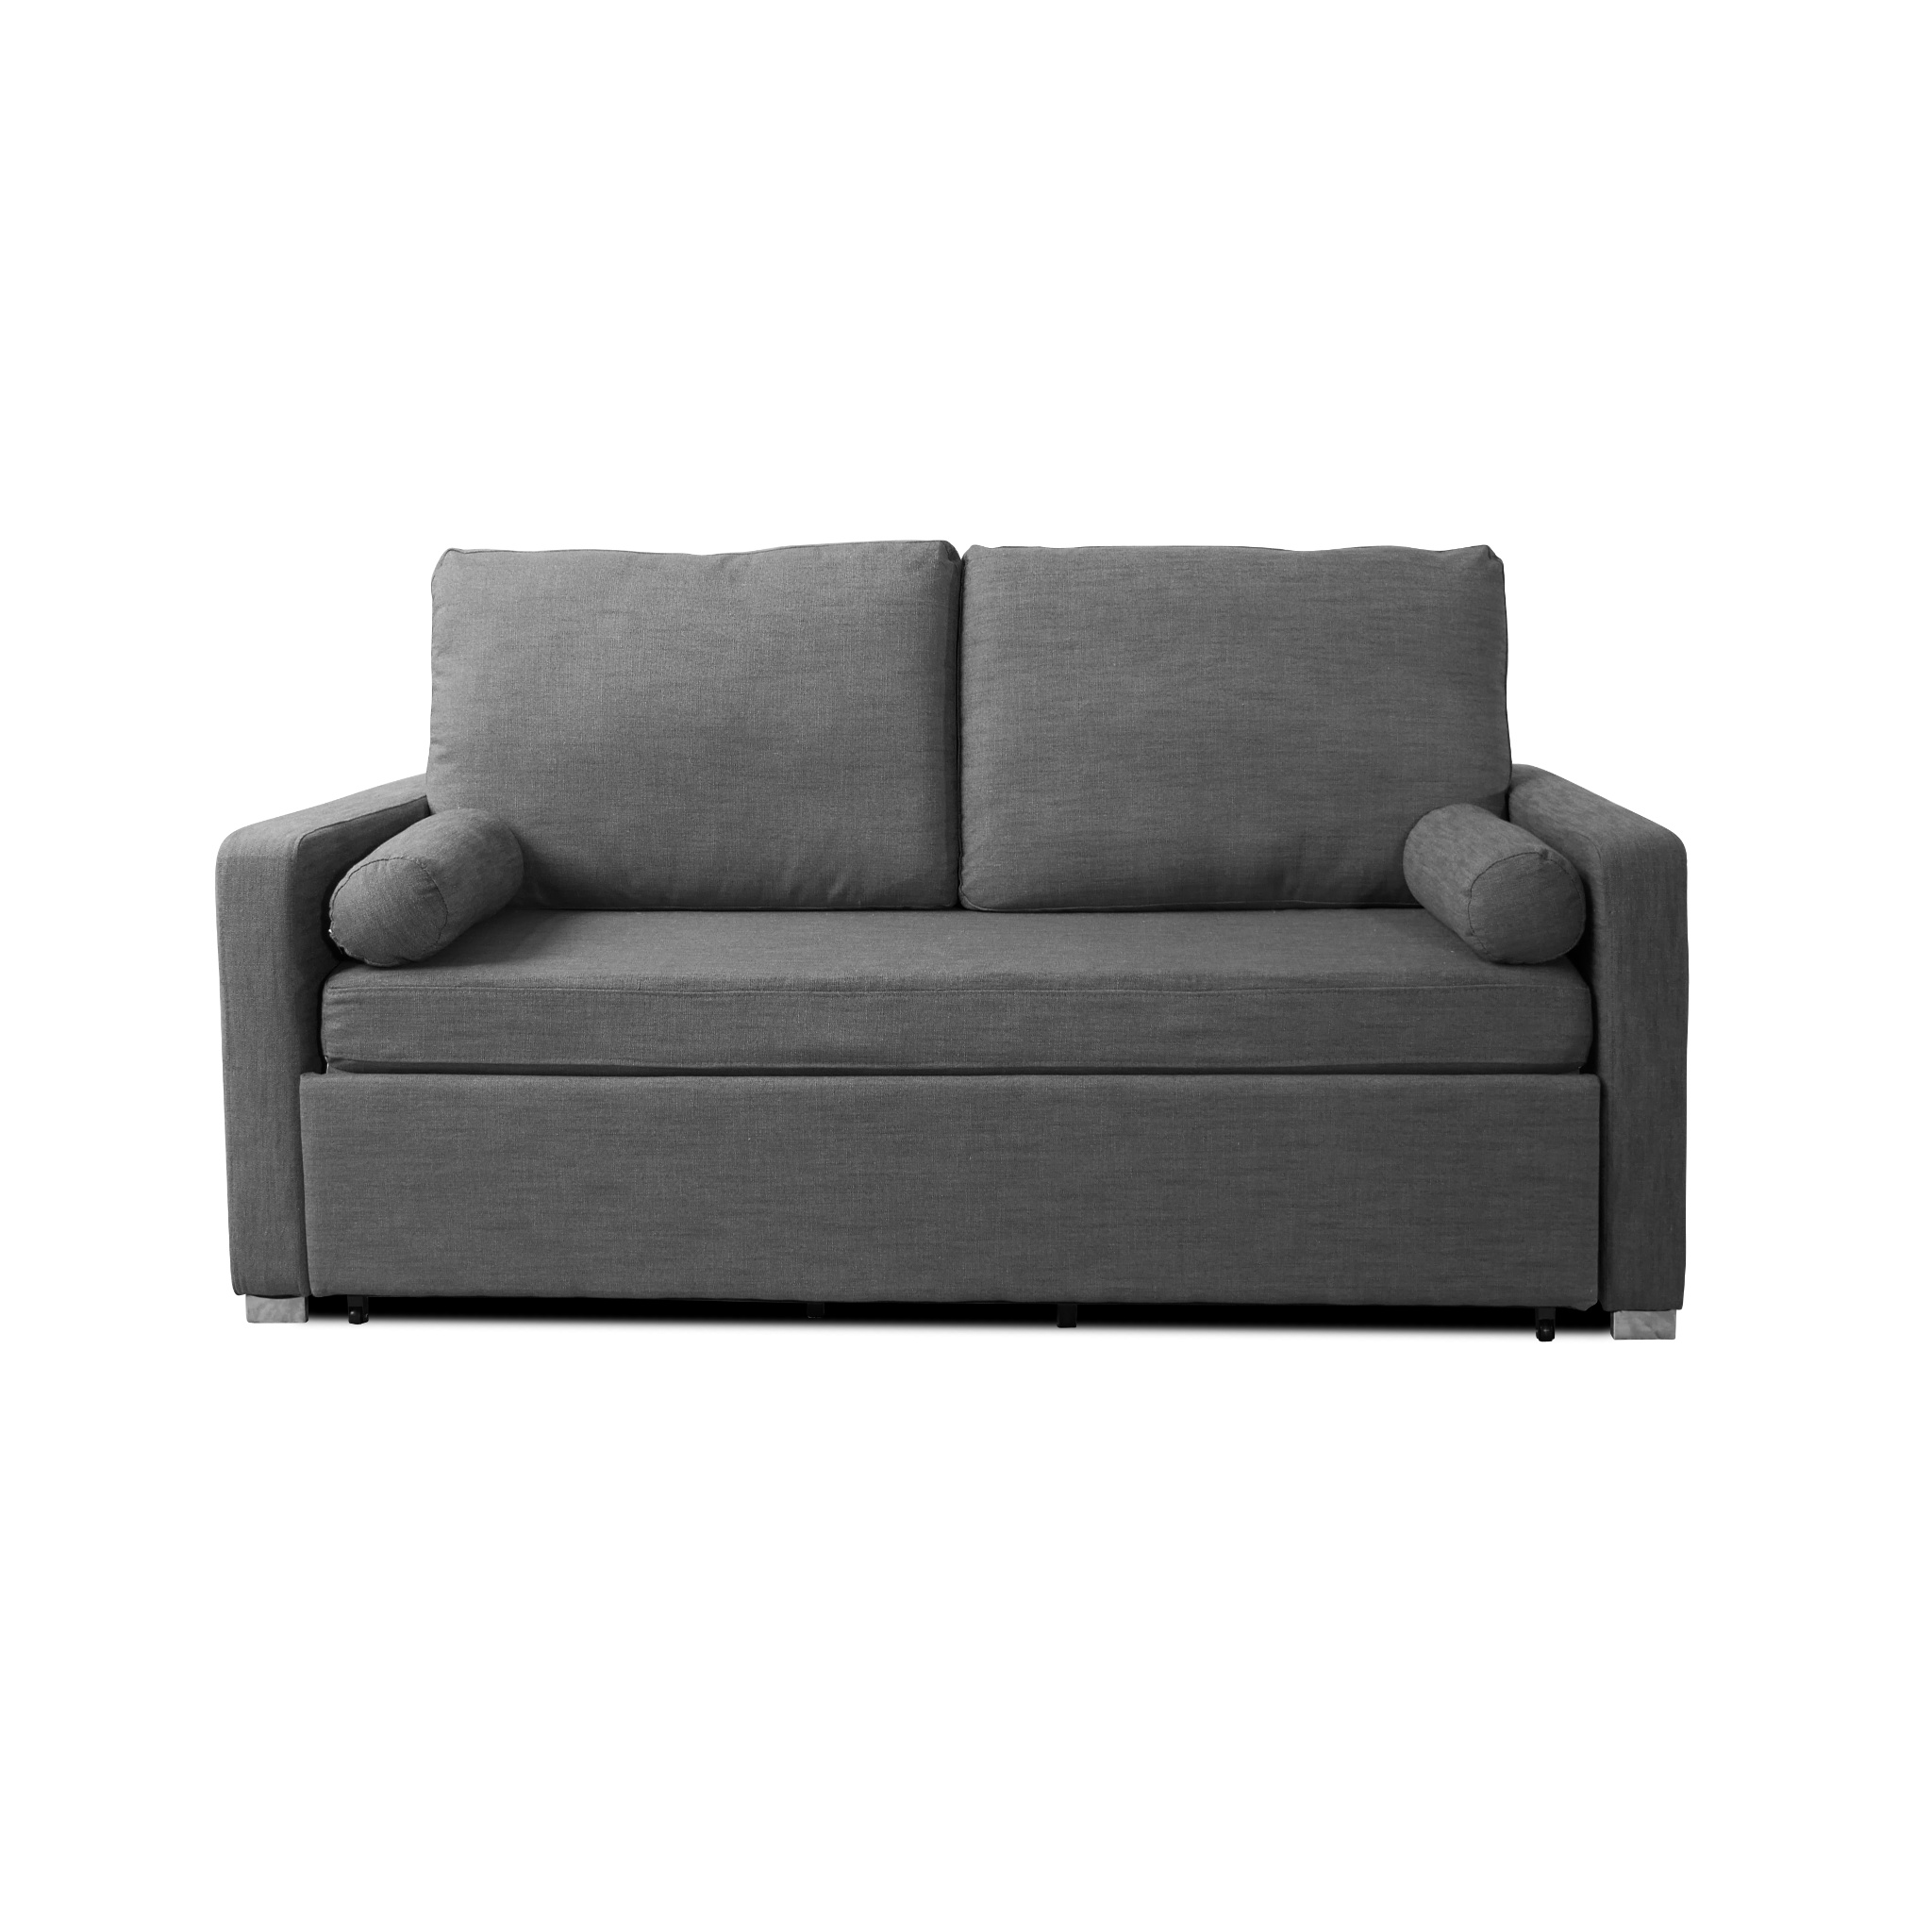 Queen Size Memory Foam Sofa Bed